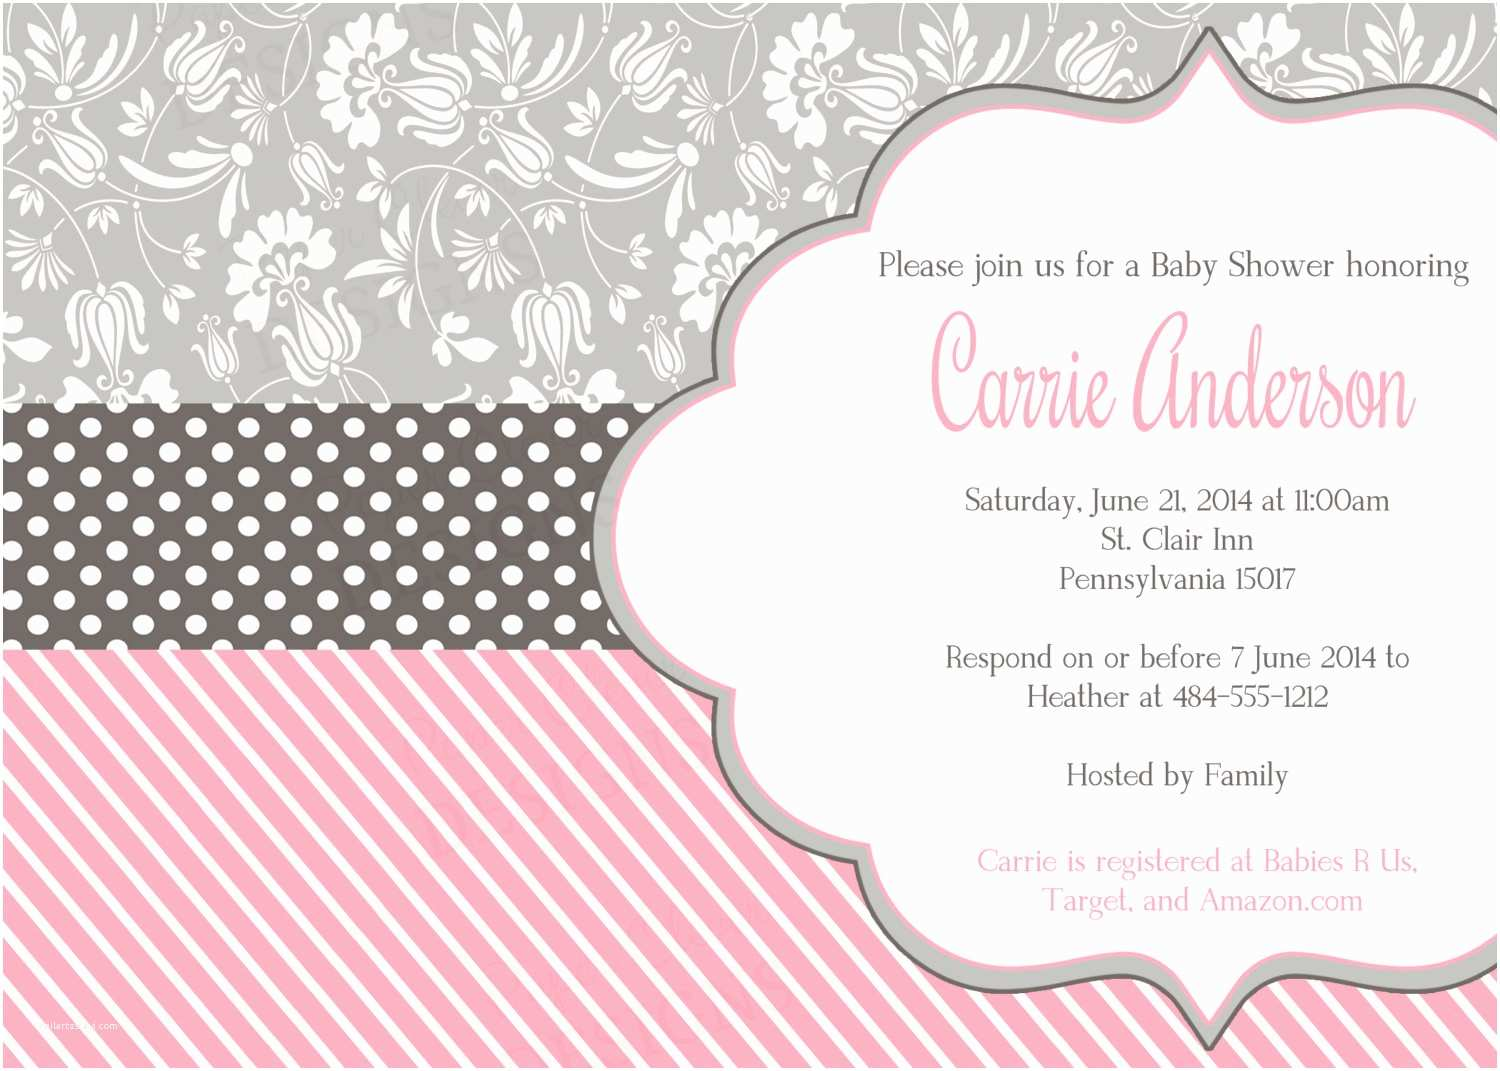 Shabby Chic Baby Shower Invitations Template How to Make Shabby Chic Baby Shower Invitations